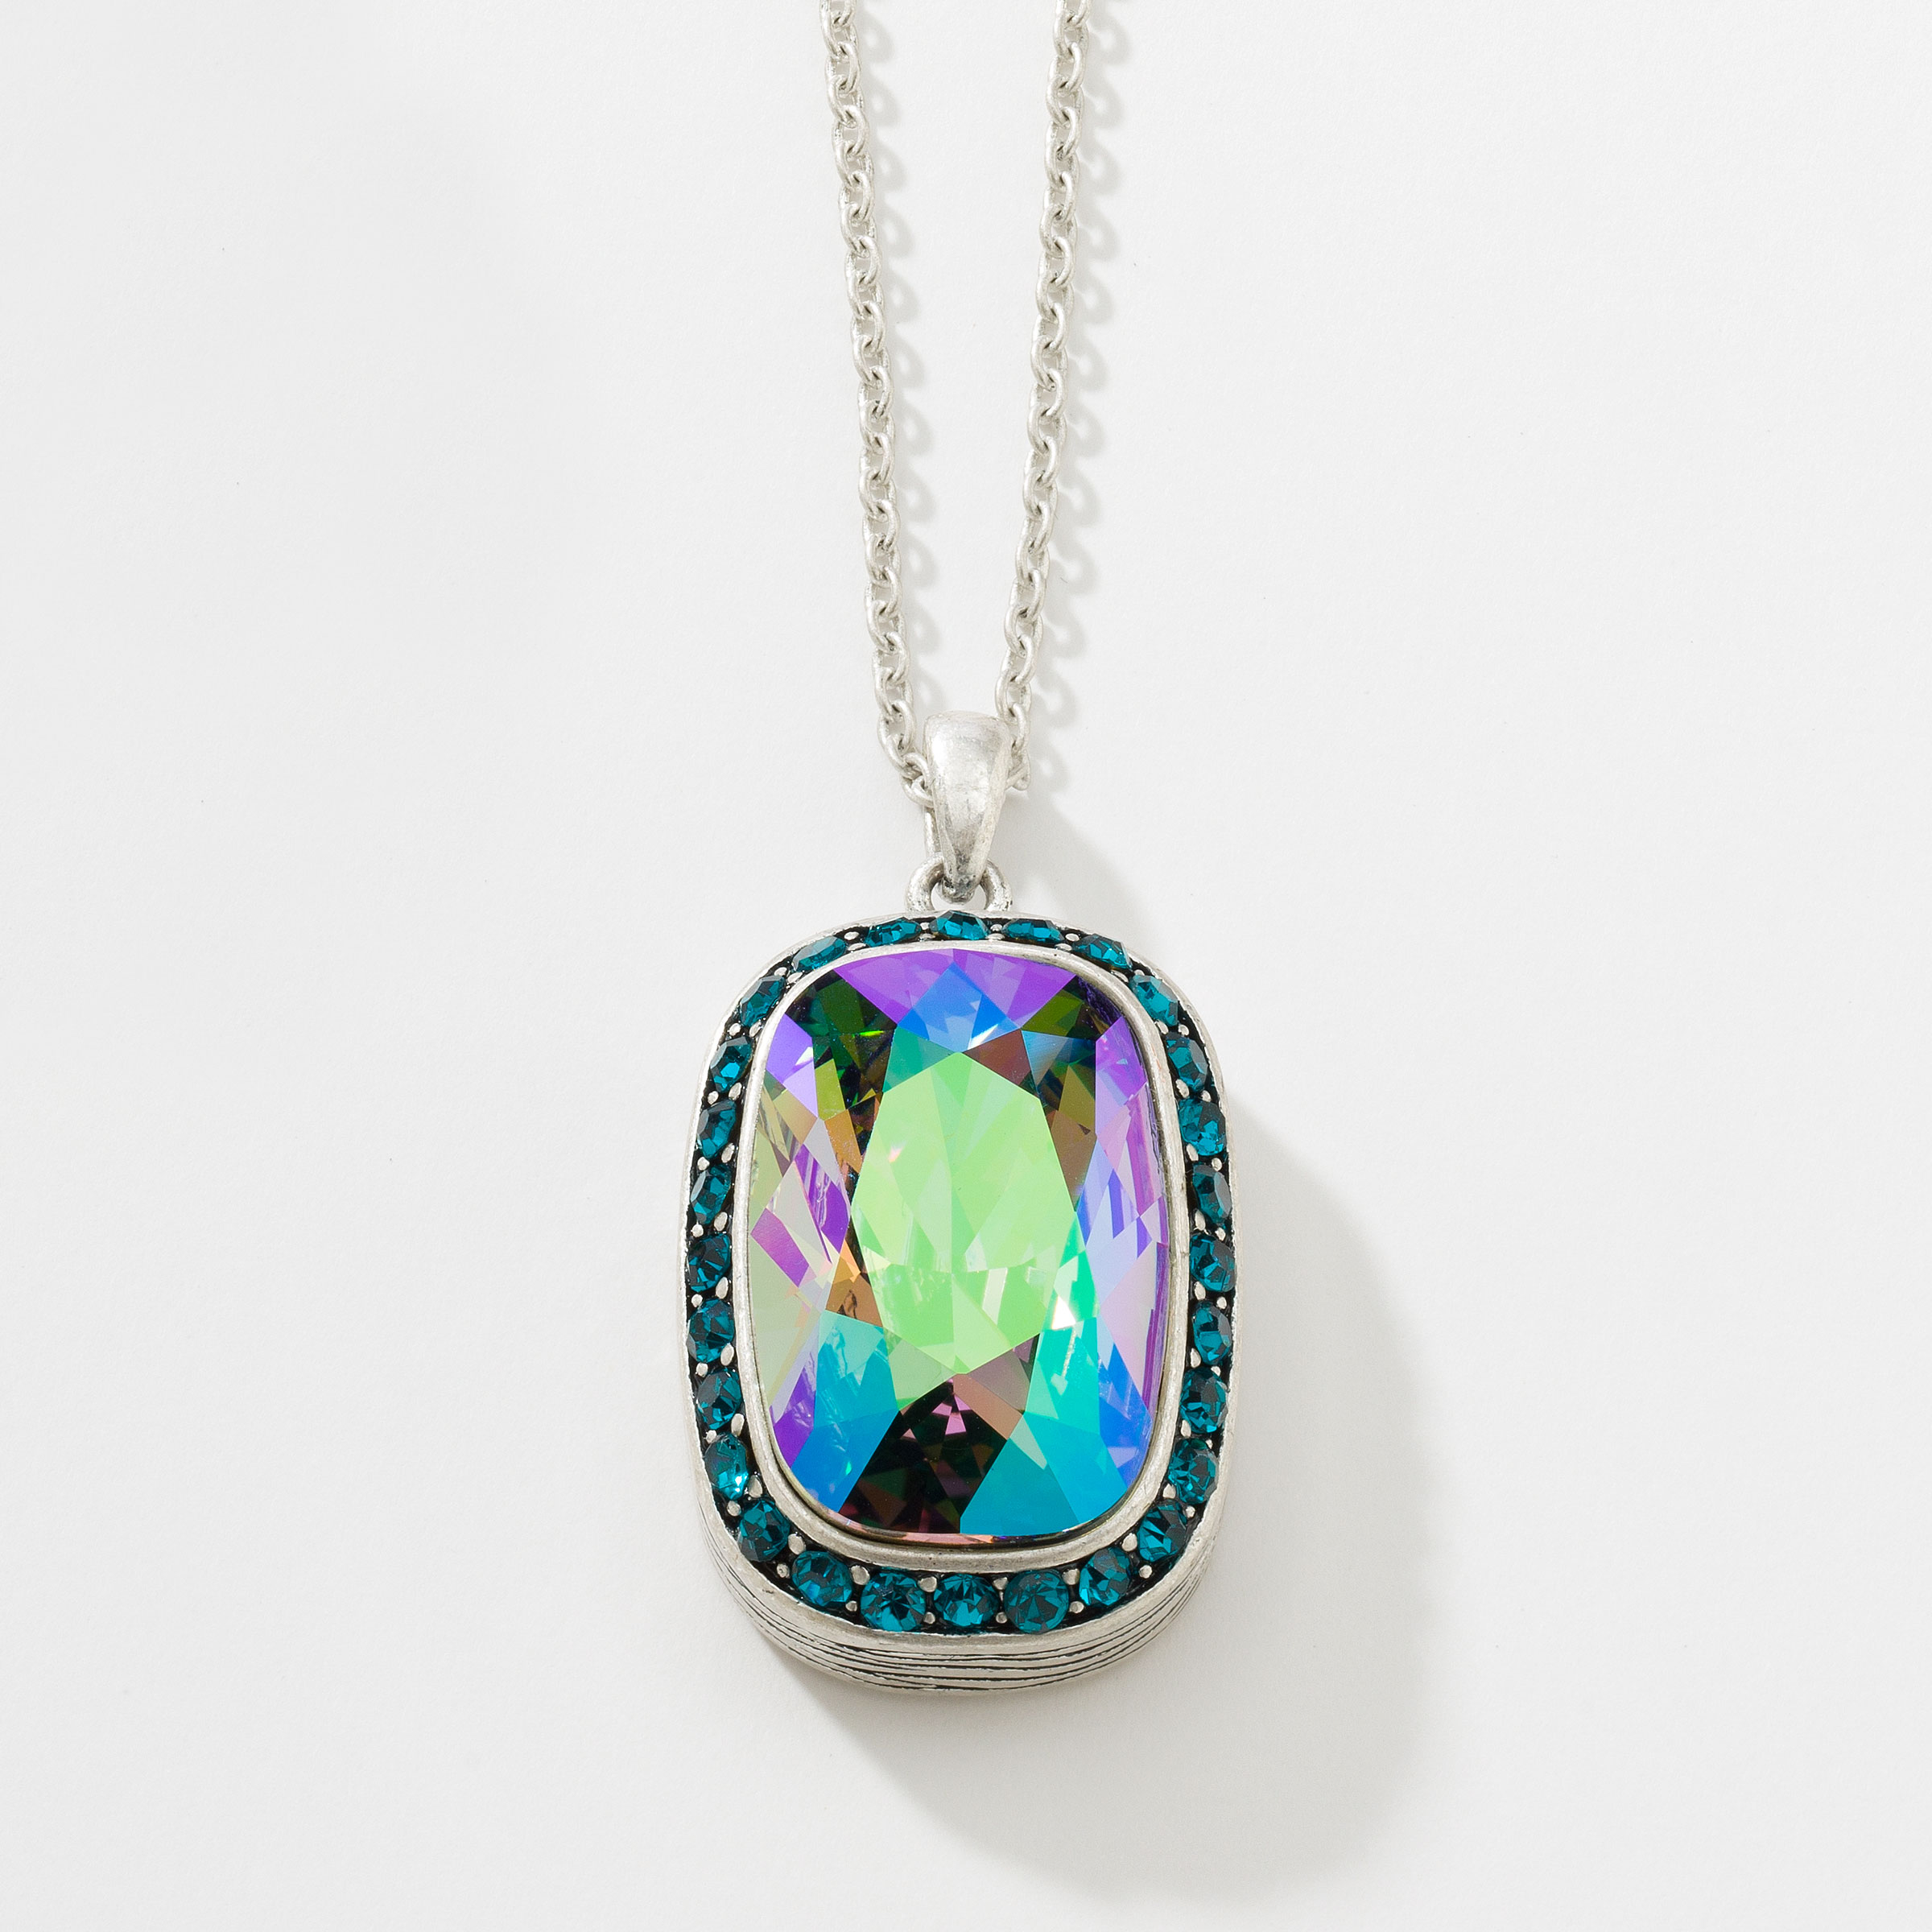 Touchstone crystal by swarovski jewelry home parties enlarge prism pendant aloadofball Image collections